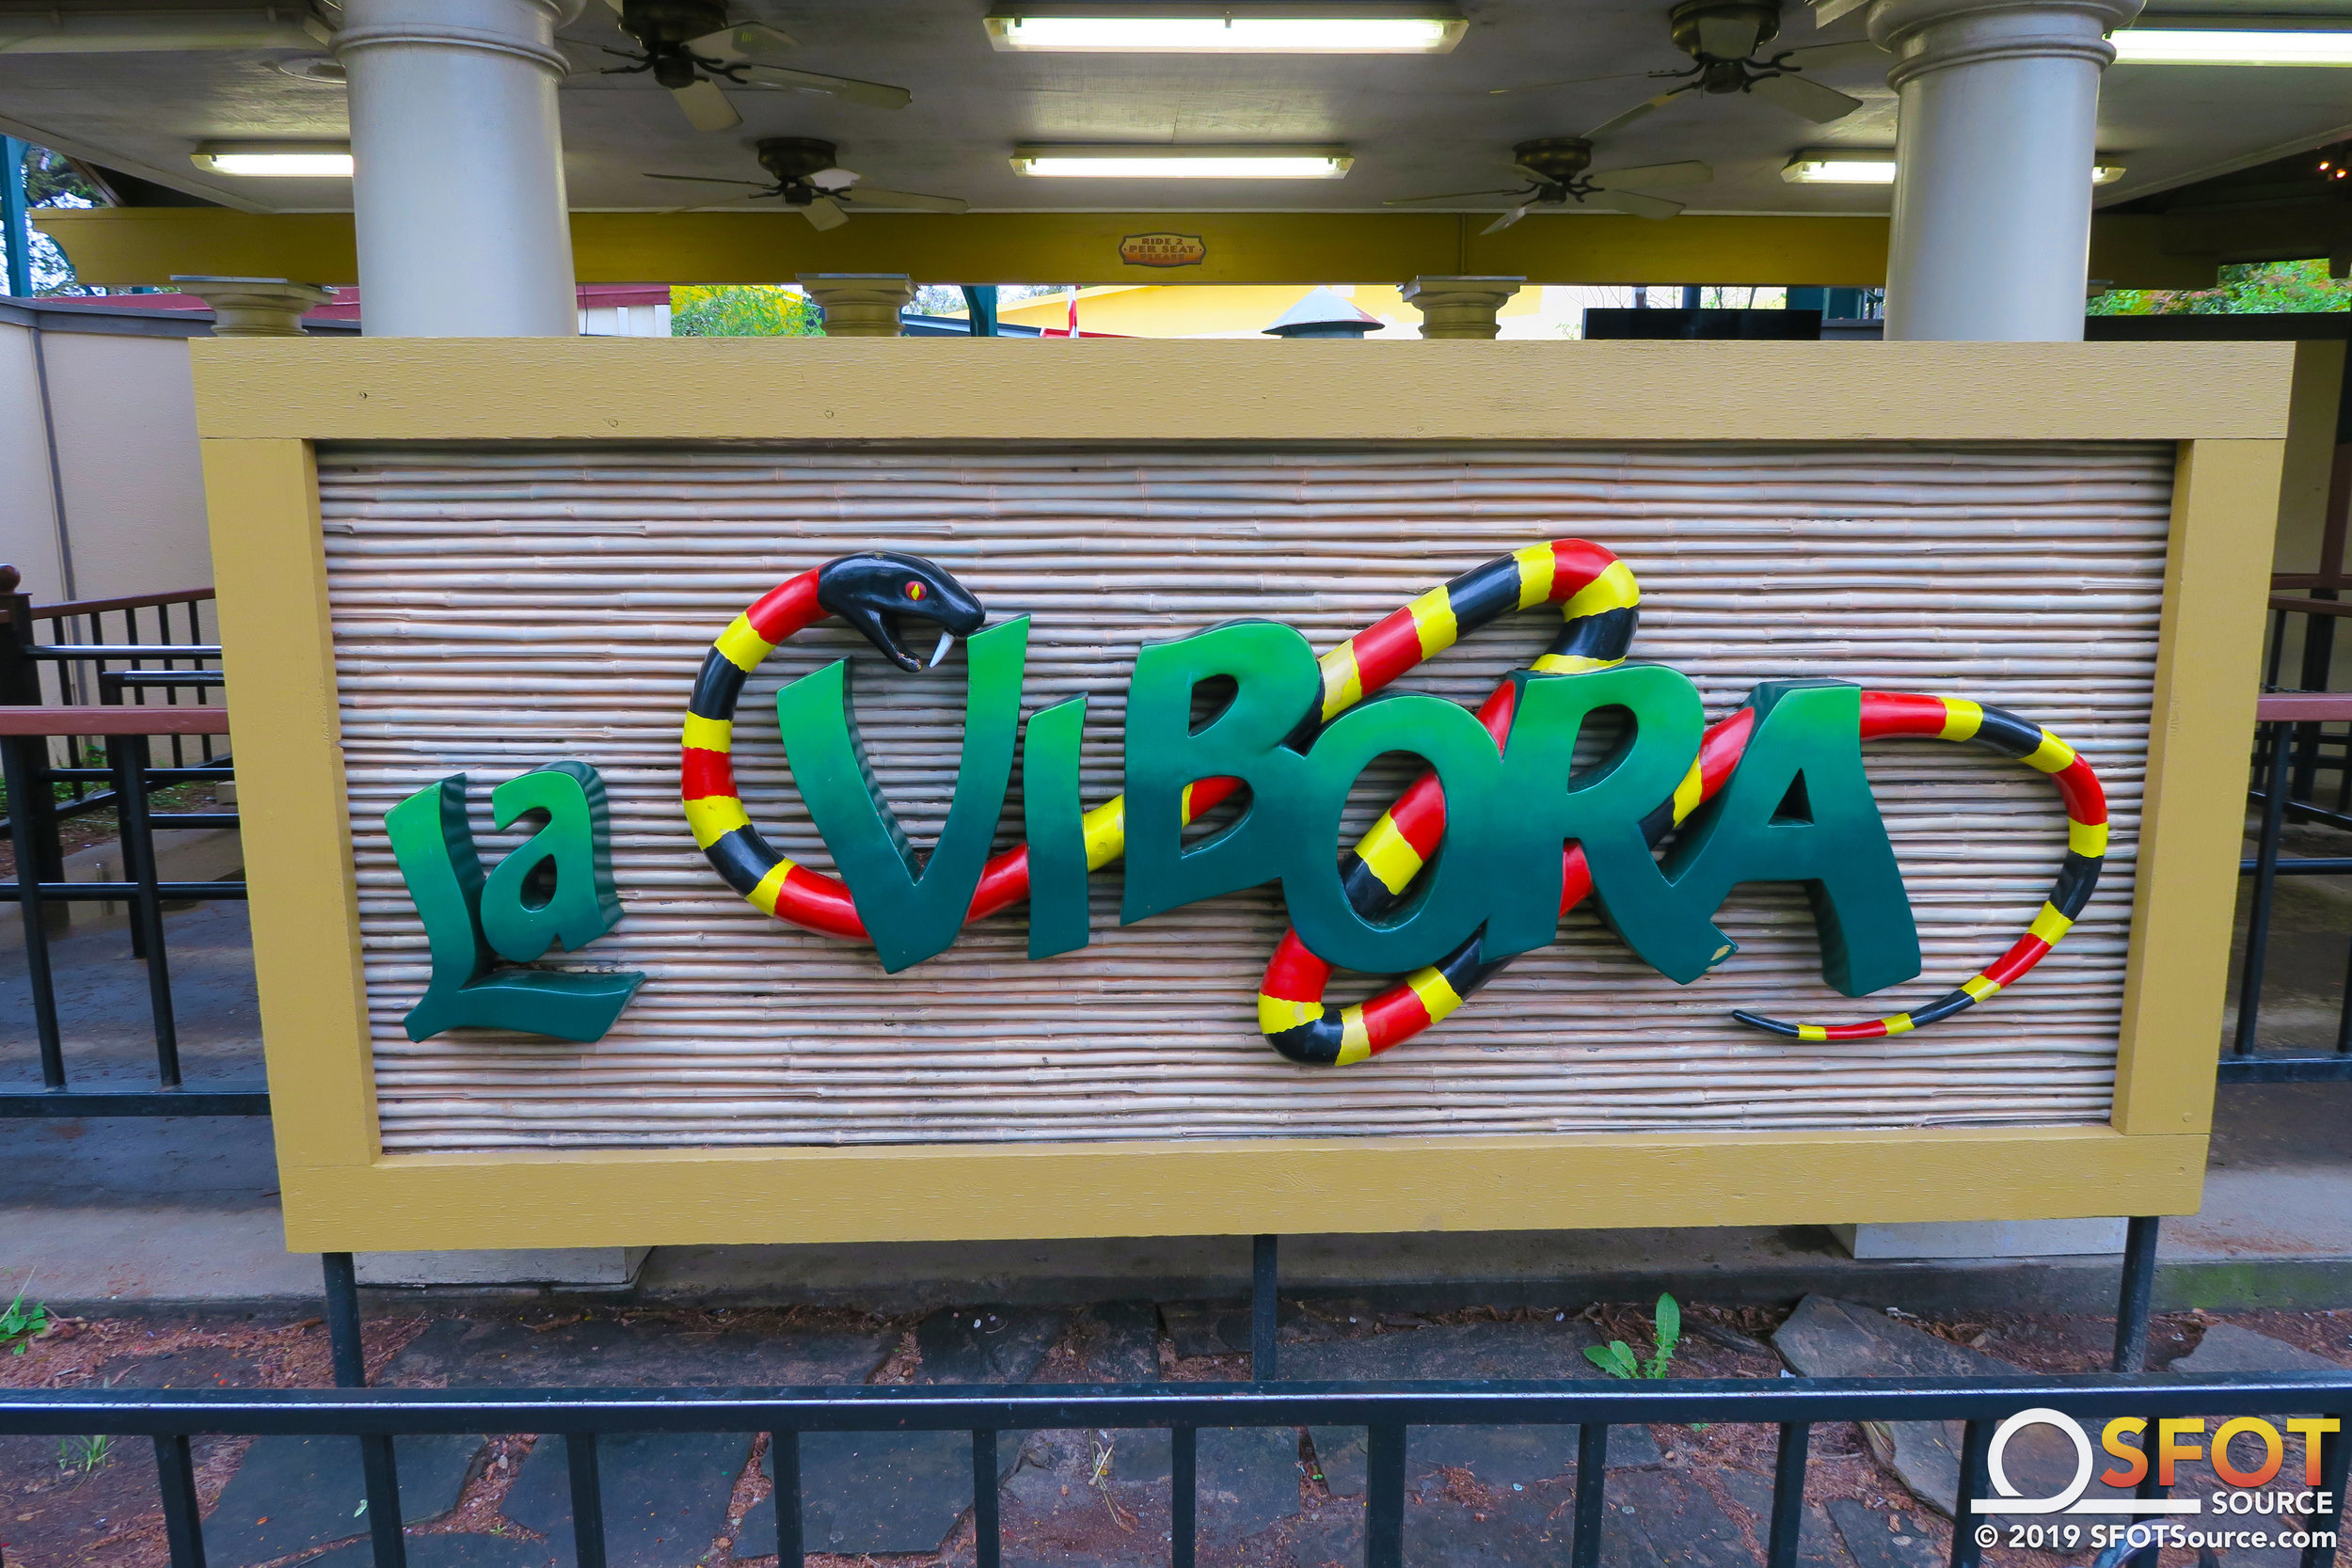 A detailed La Vibora sign can be seen from the ride's queue line.